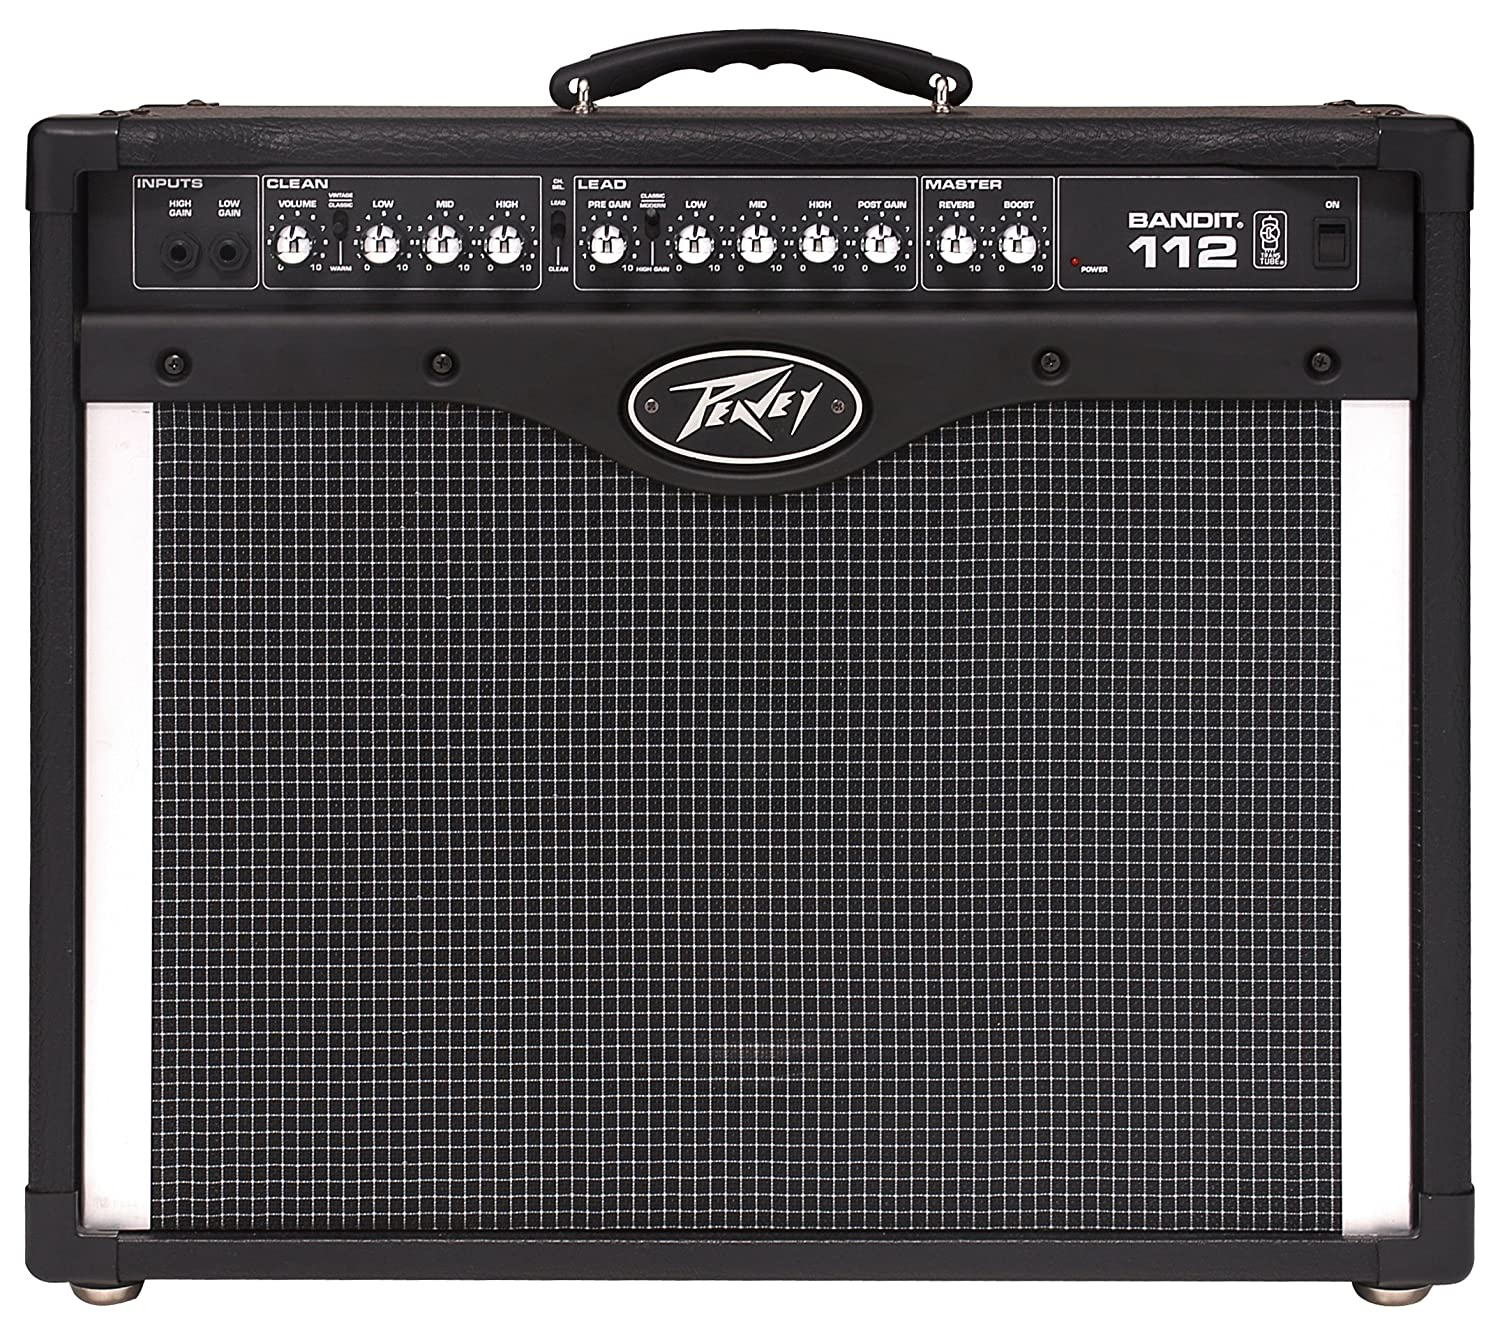 2. Peavey Bandit 112 TransTube Amplifier - Best High Wattage Option